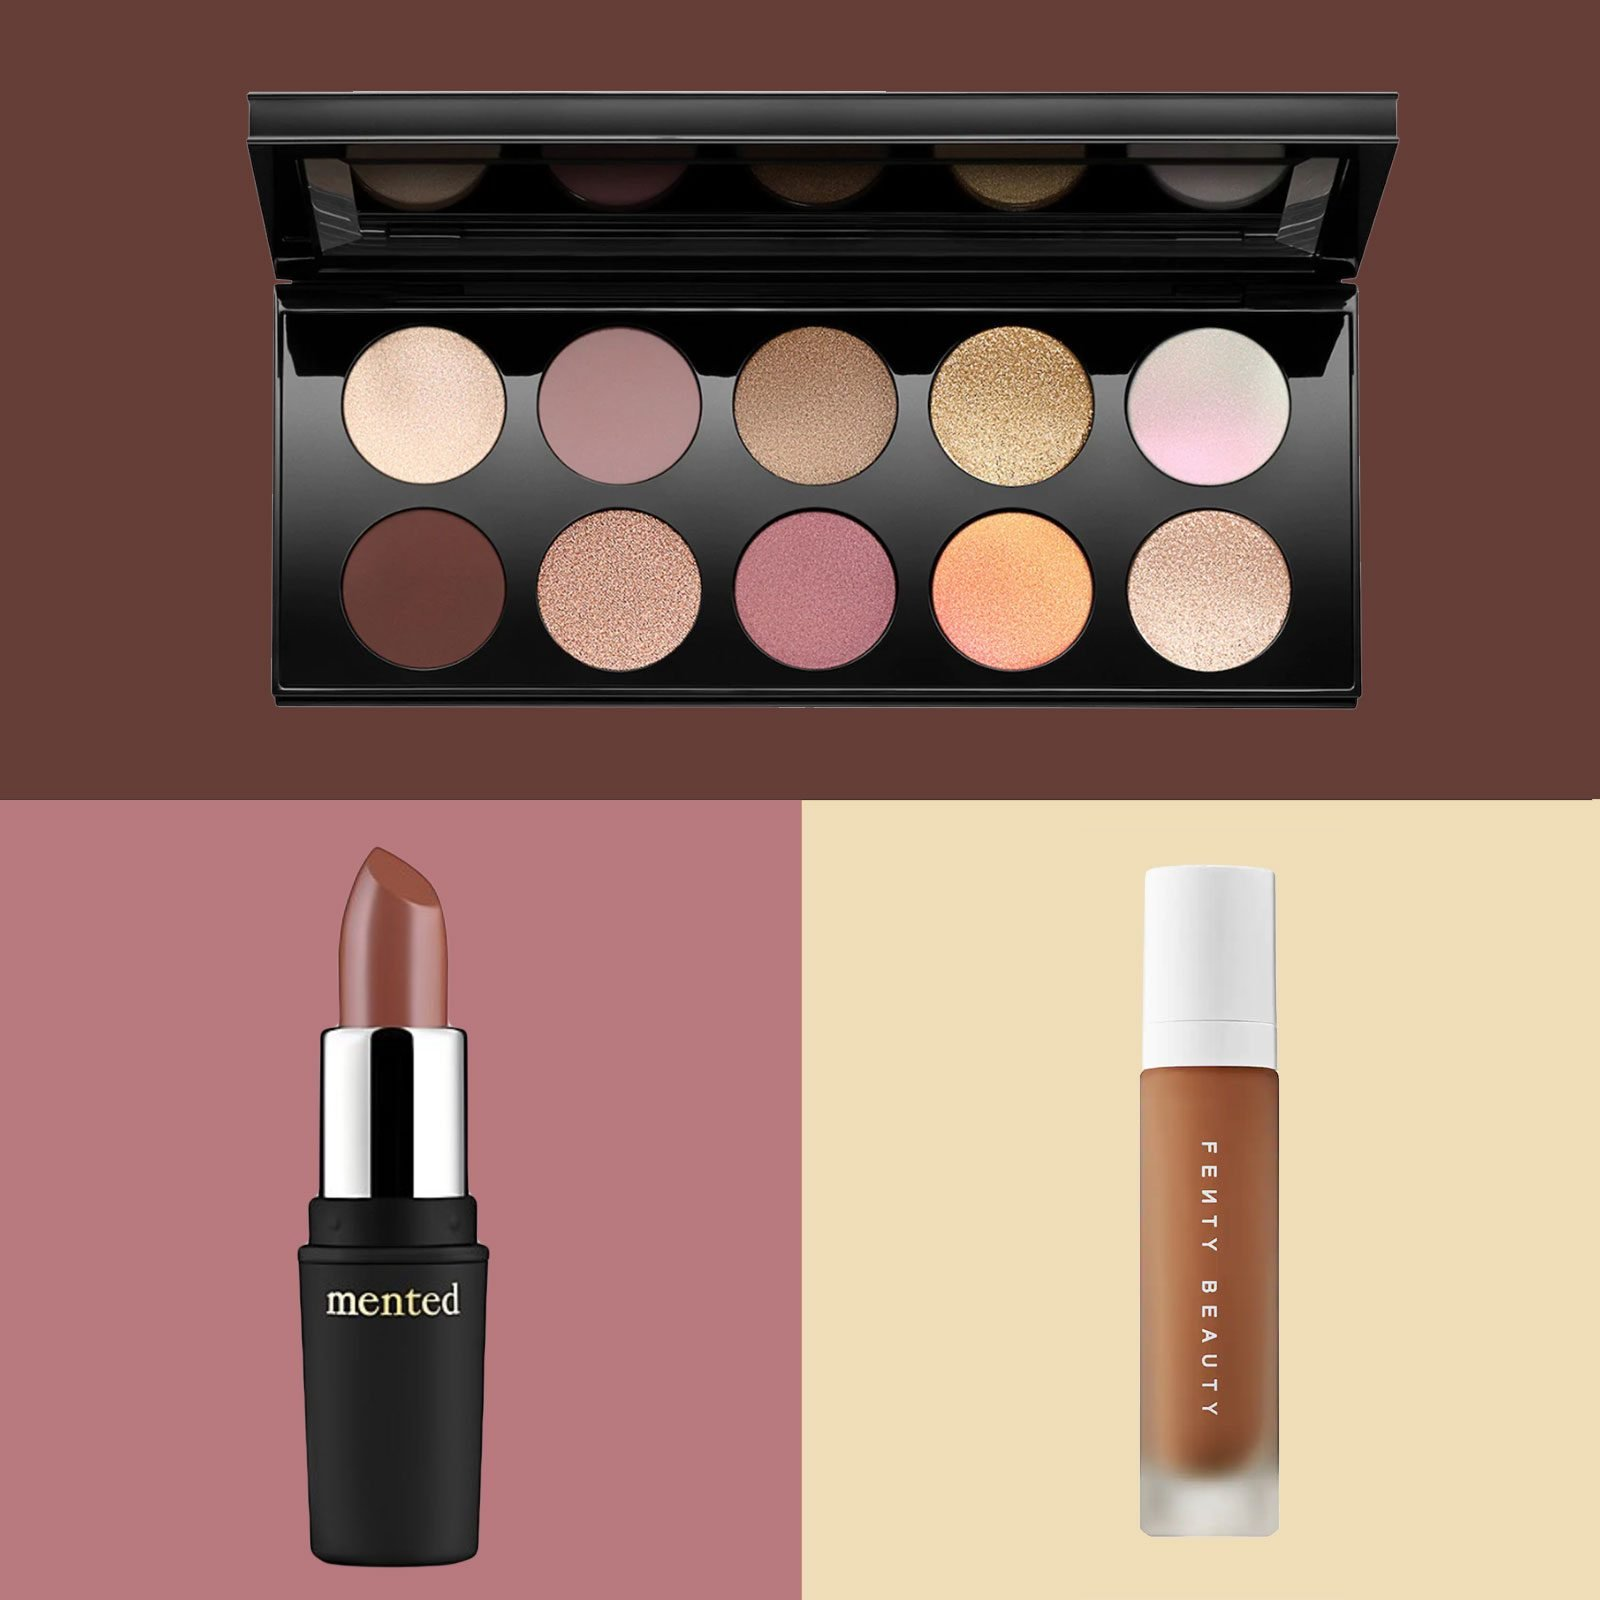 Eye shadow palette, concealer, and foundation